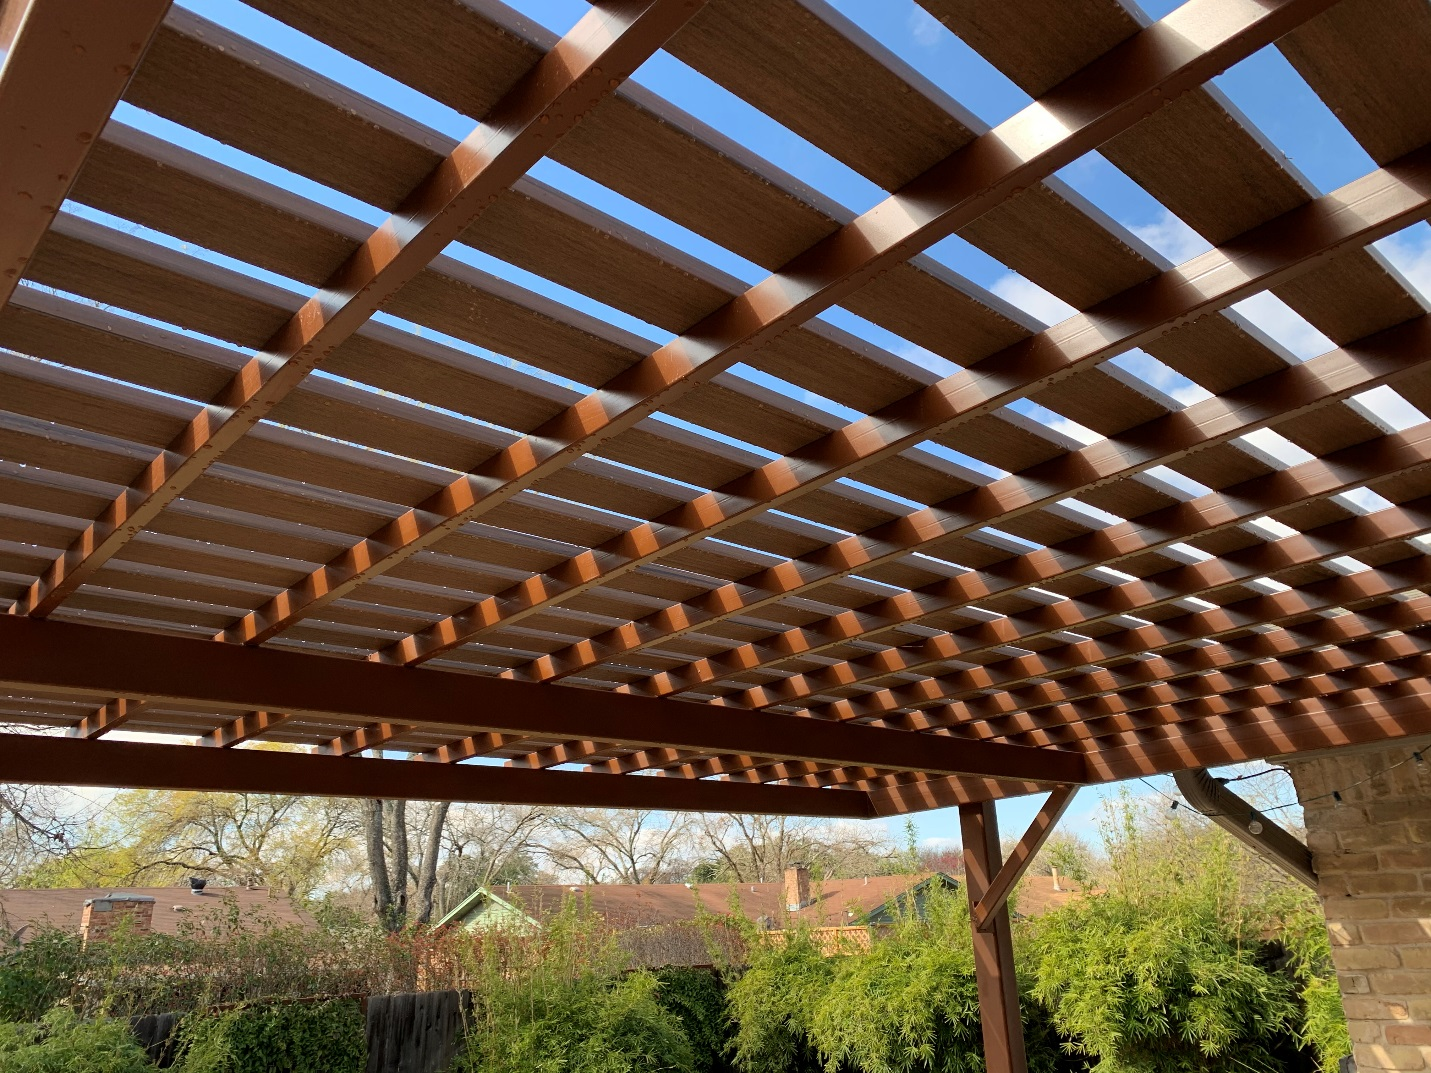 PVC-decking-boards-were-used-for-the-pergola's-slats